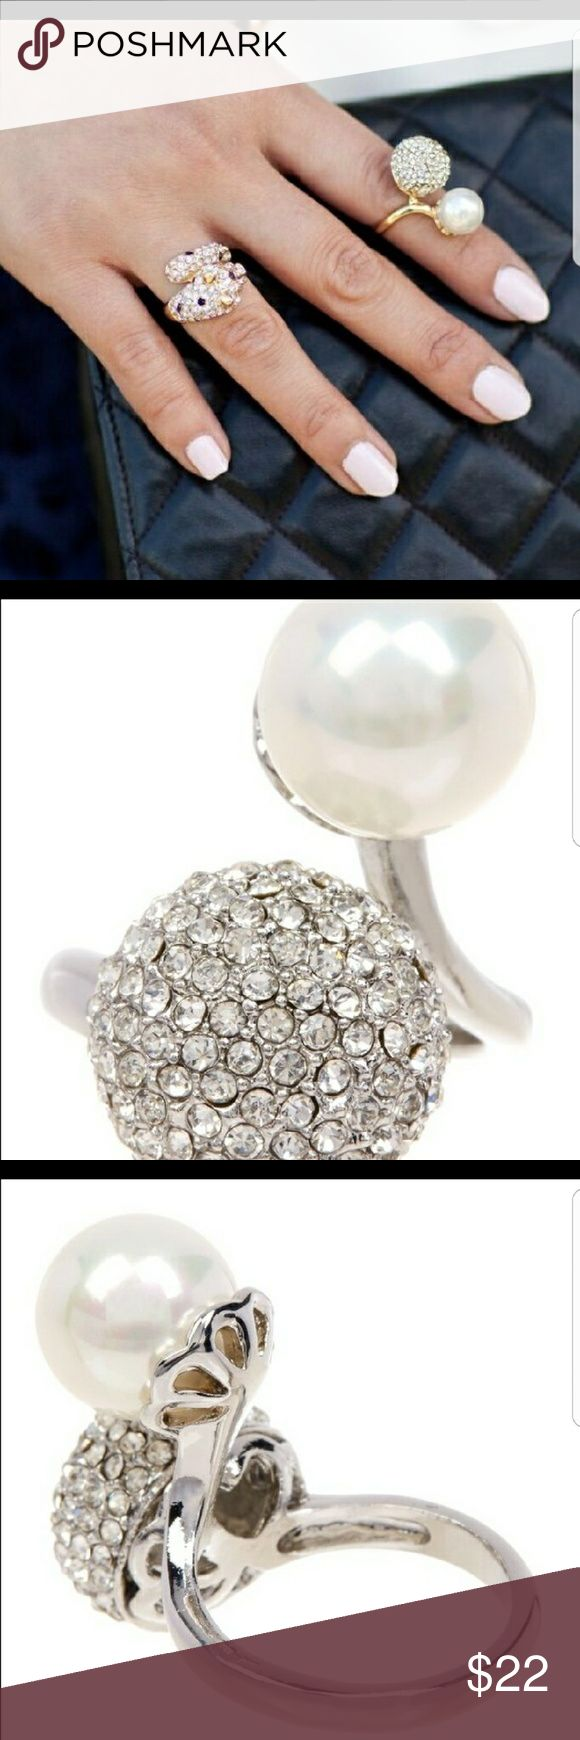 Silver Pave & Pearl Ring Material content : 18k white gold plated base,  nickle & lead free T&J Designs Jewelry Rings